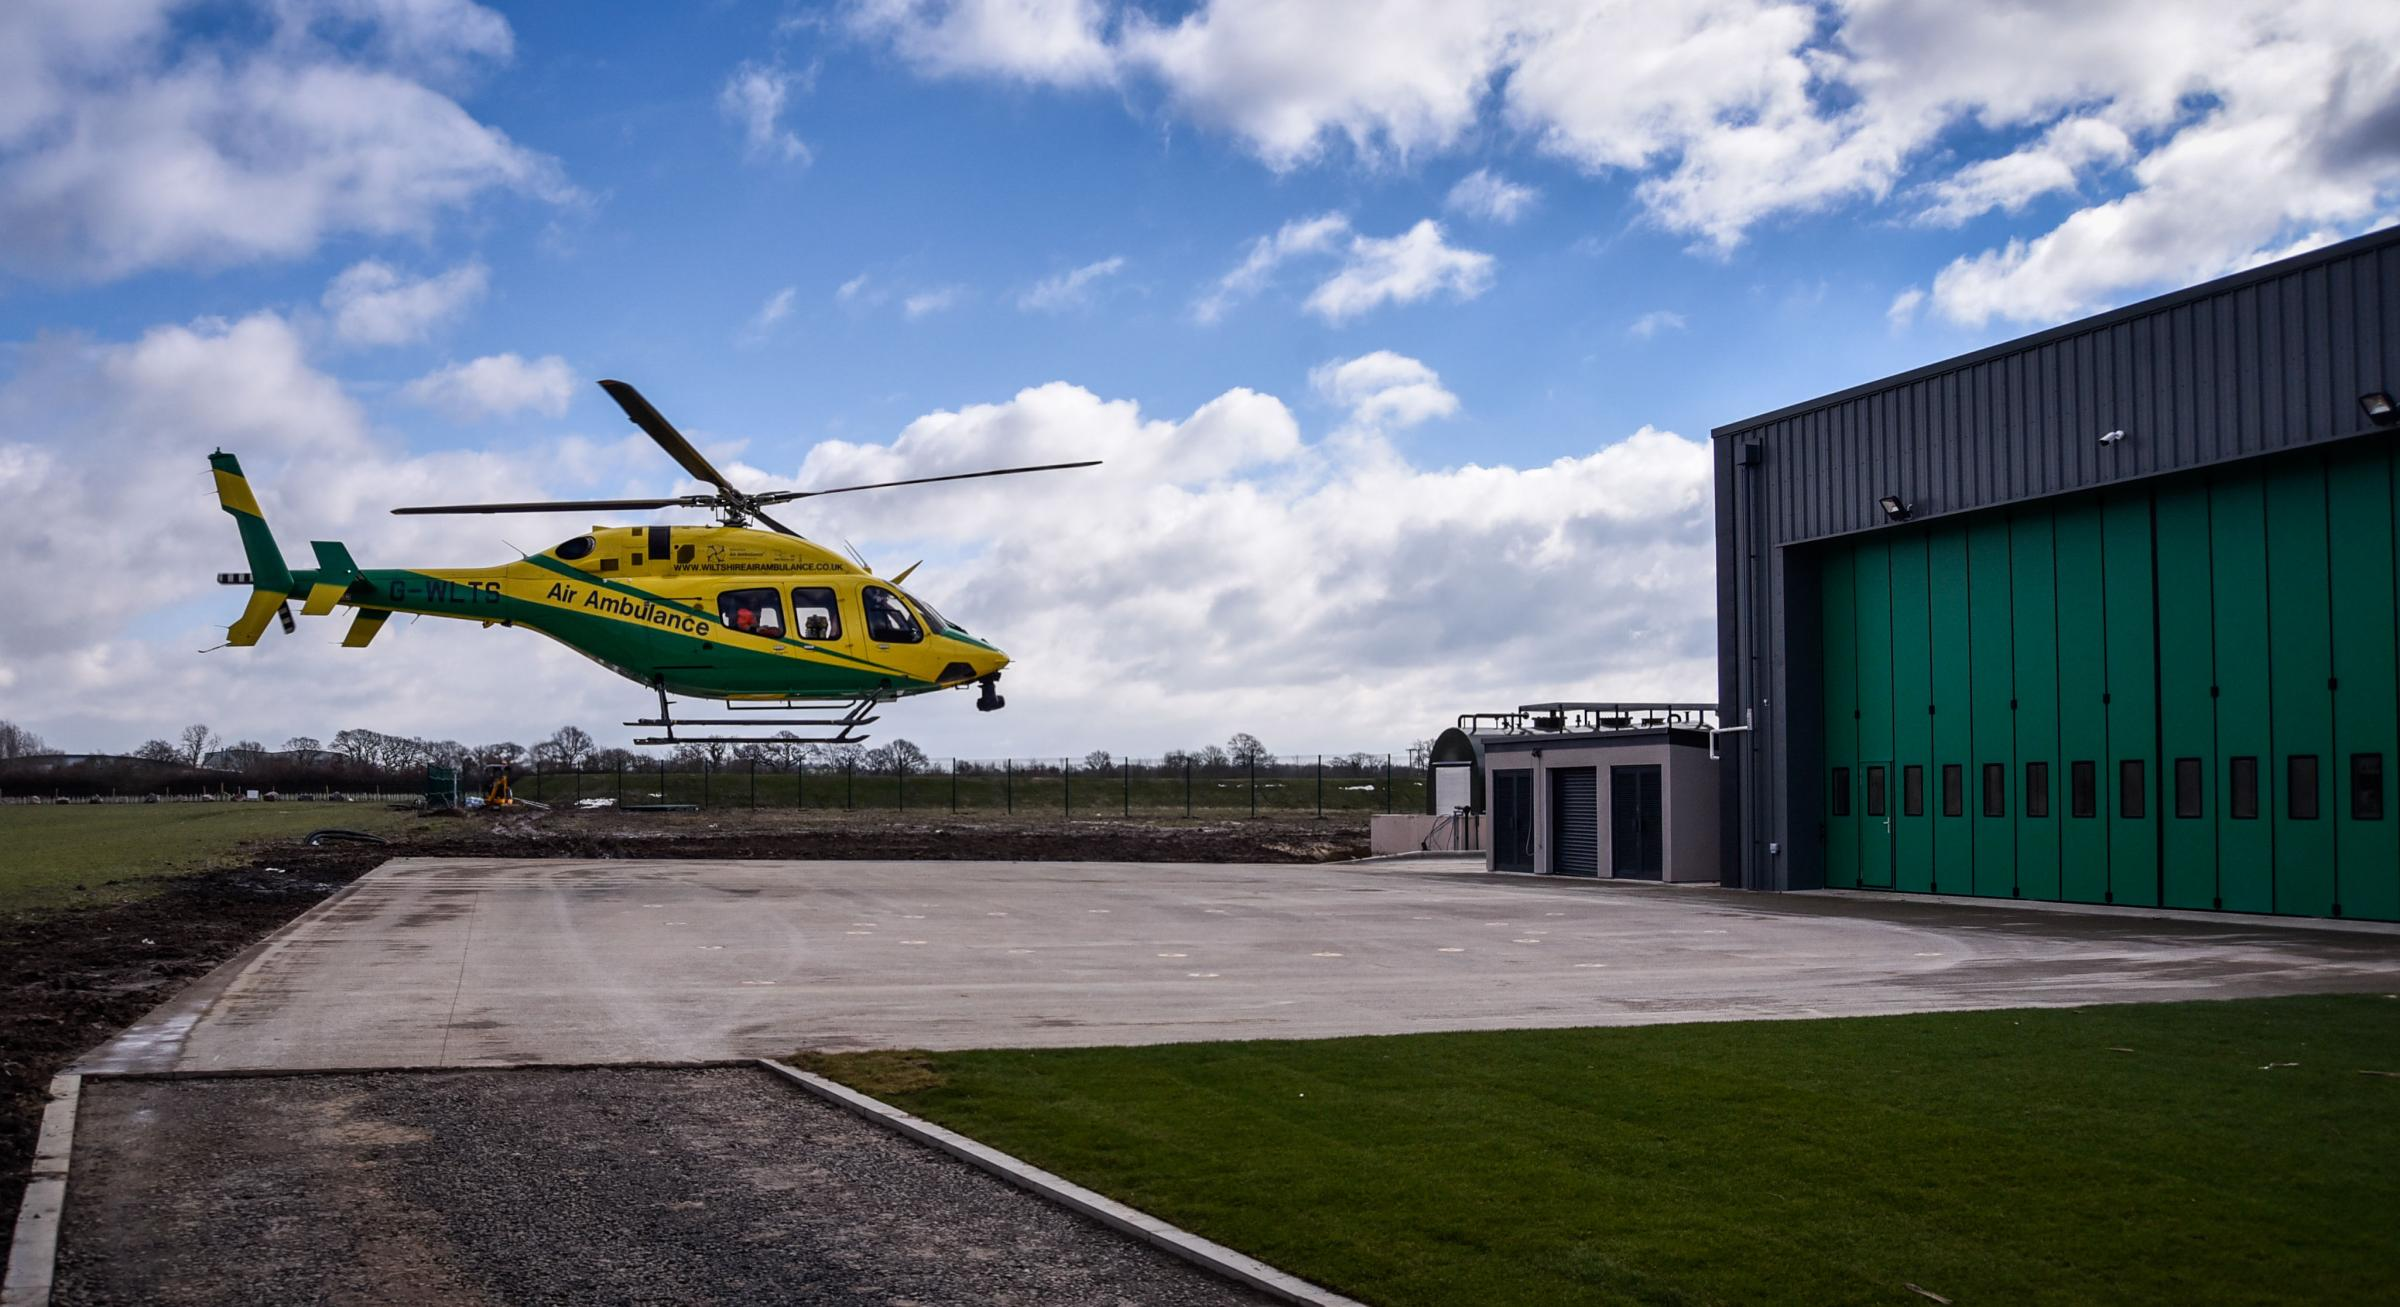 The Wiltshire Air Ambulance landing at the new airbase in Semington. Photo: www.gphillipsphotography.com GP 1240.